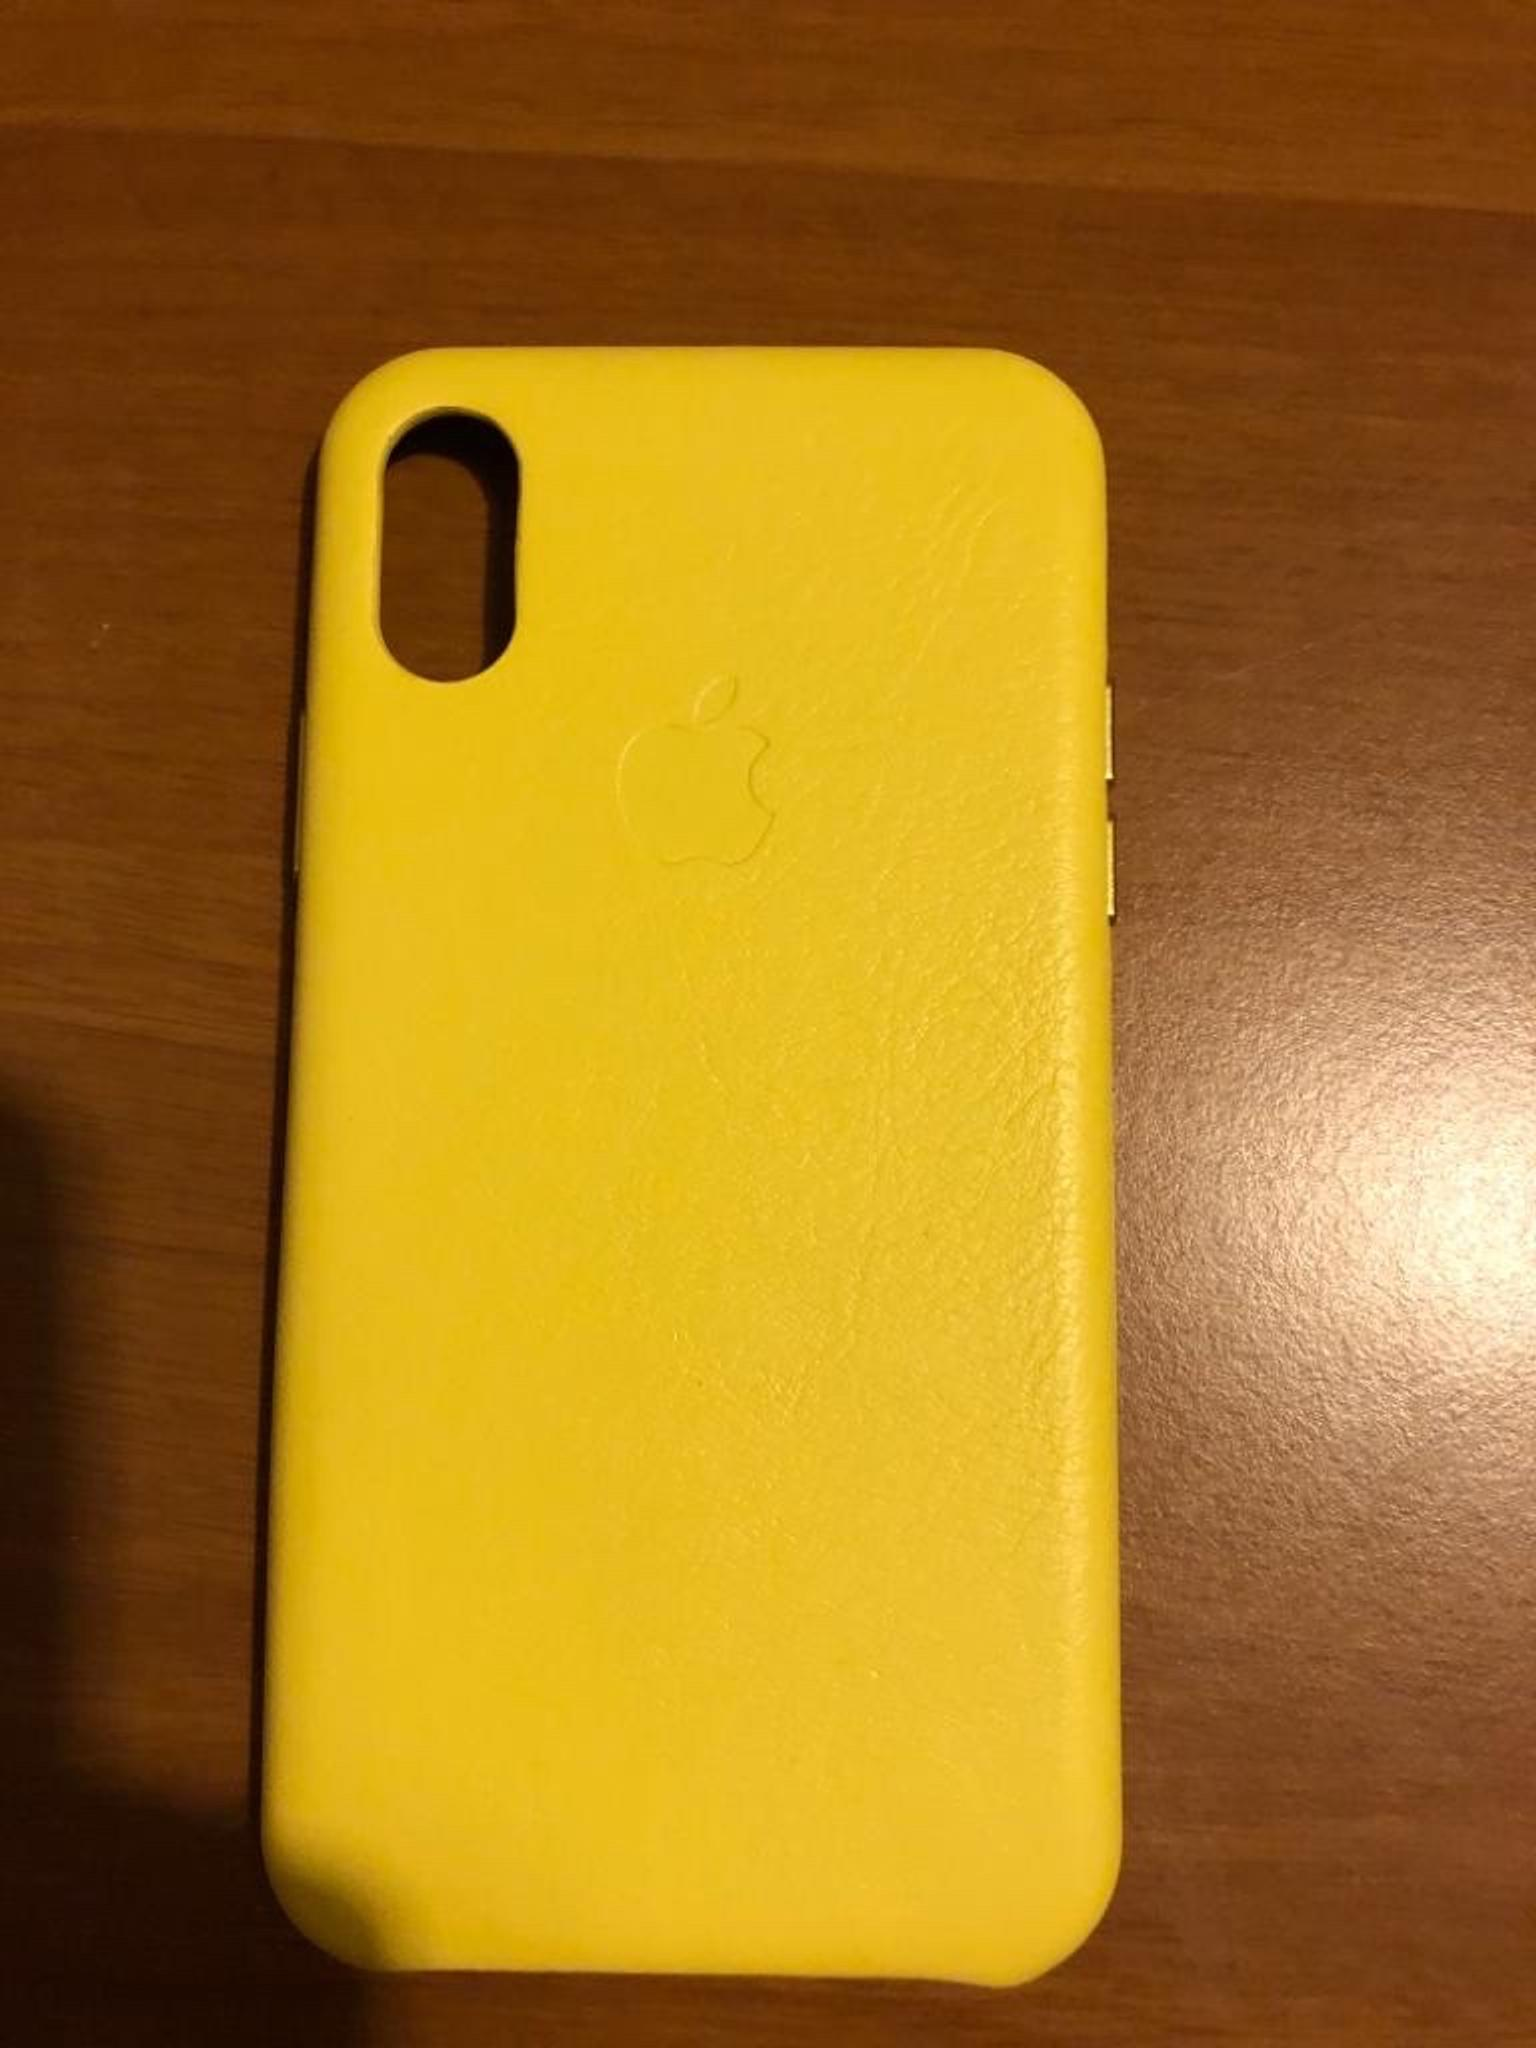 cover gialla iphone 6s